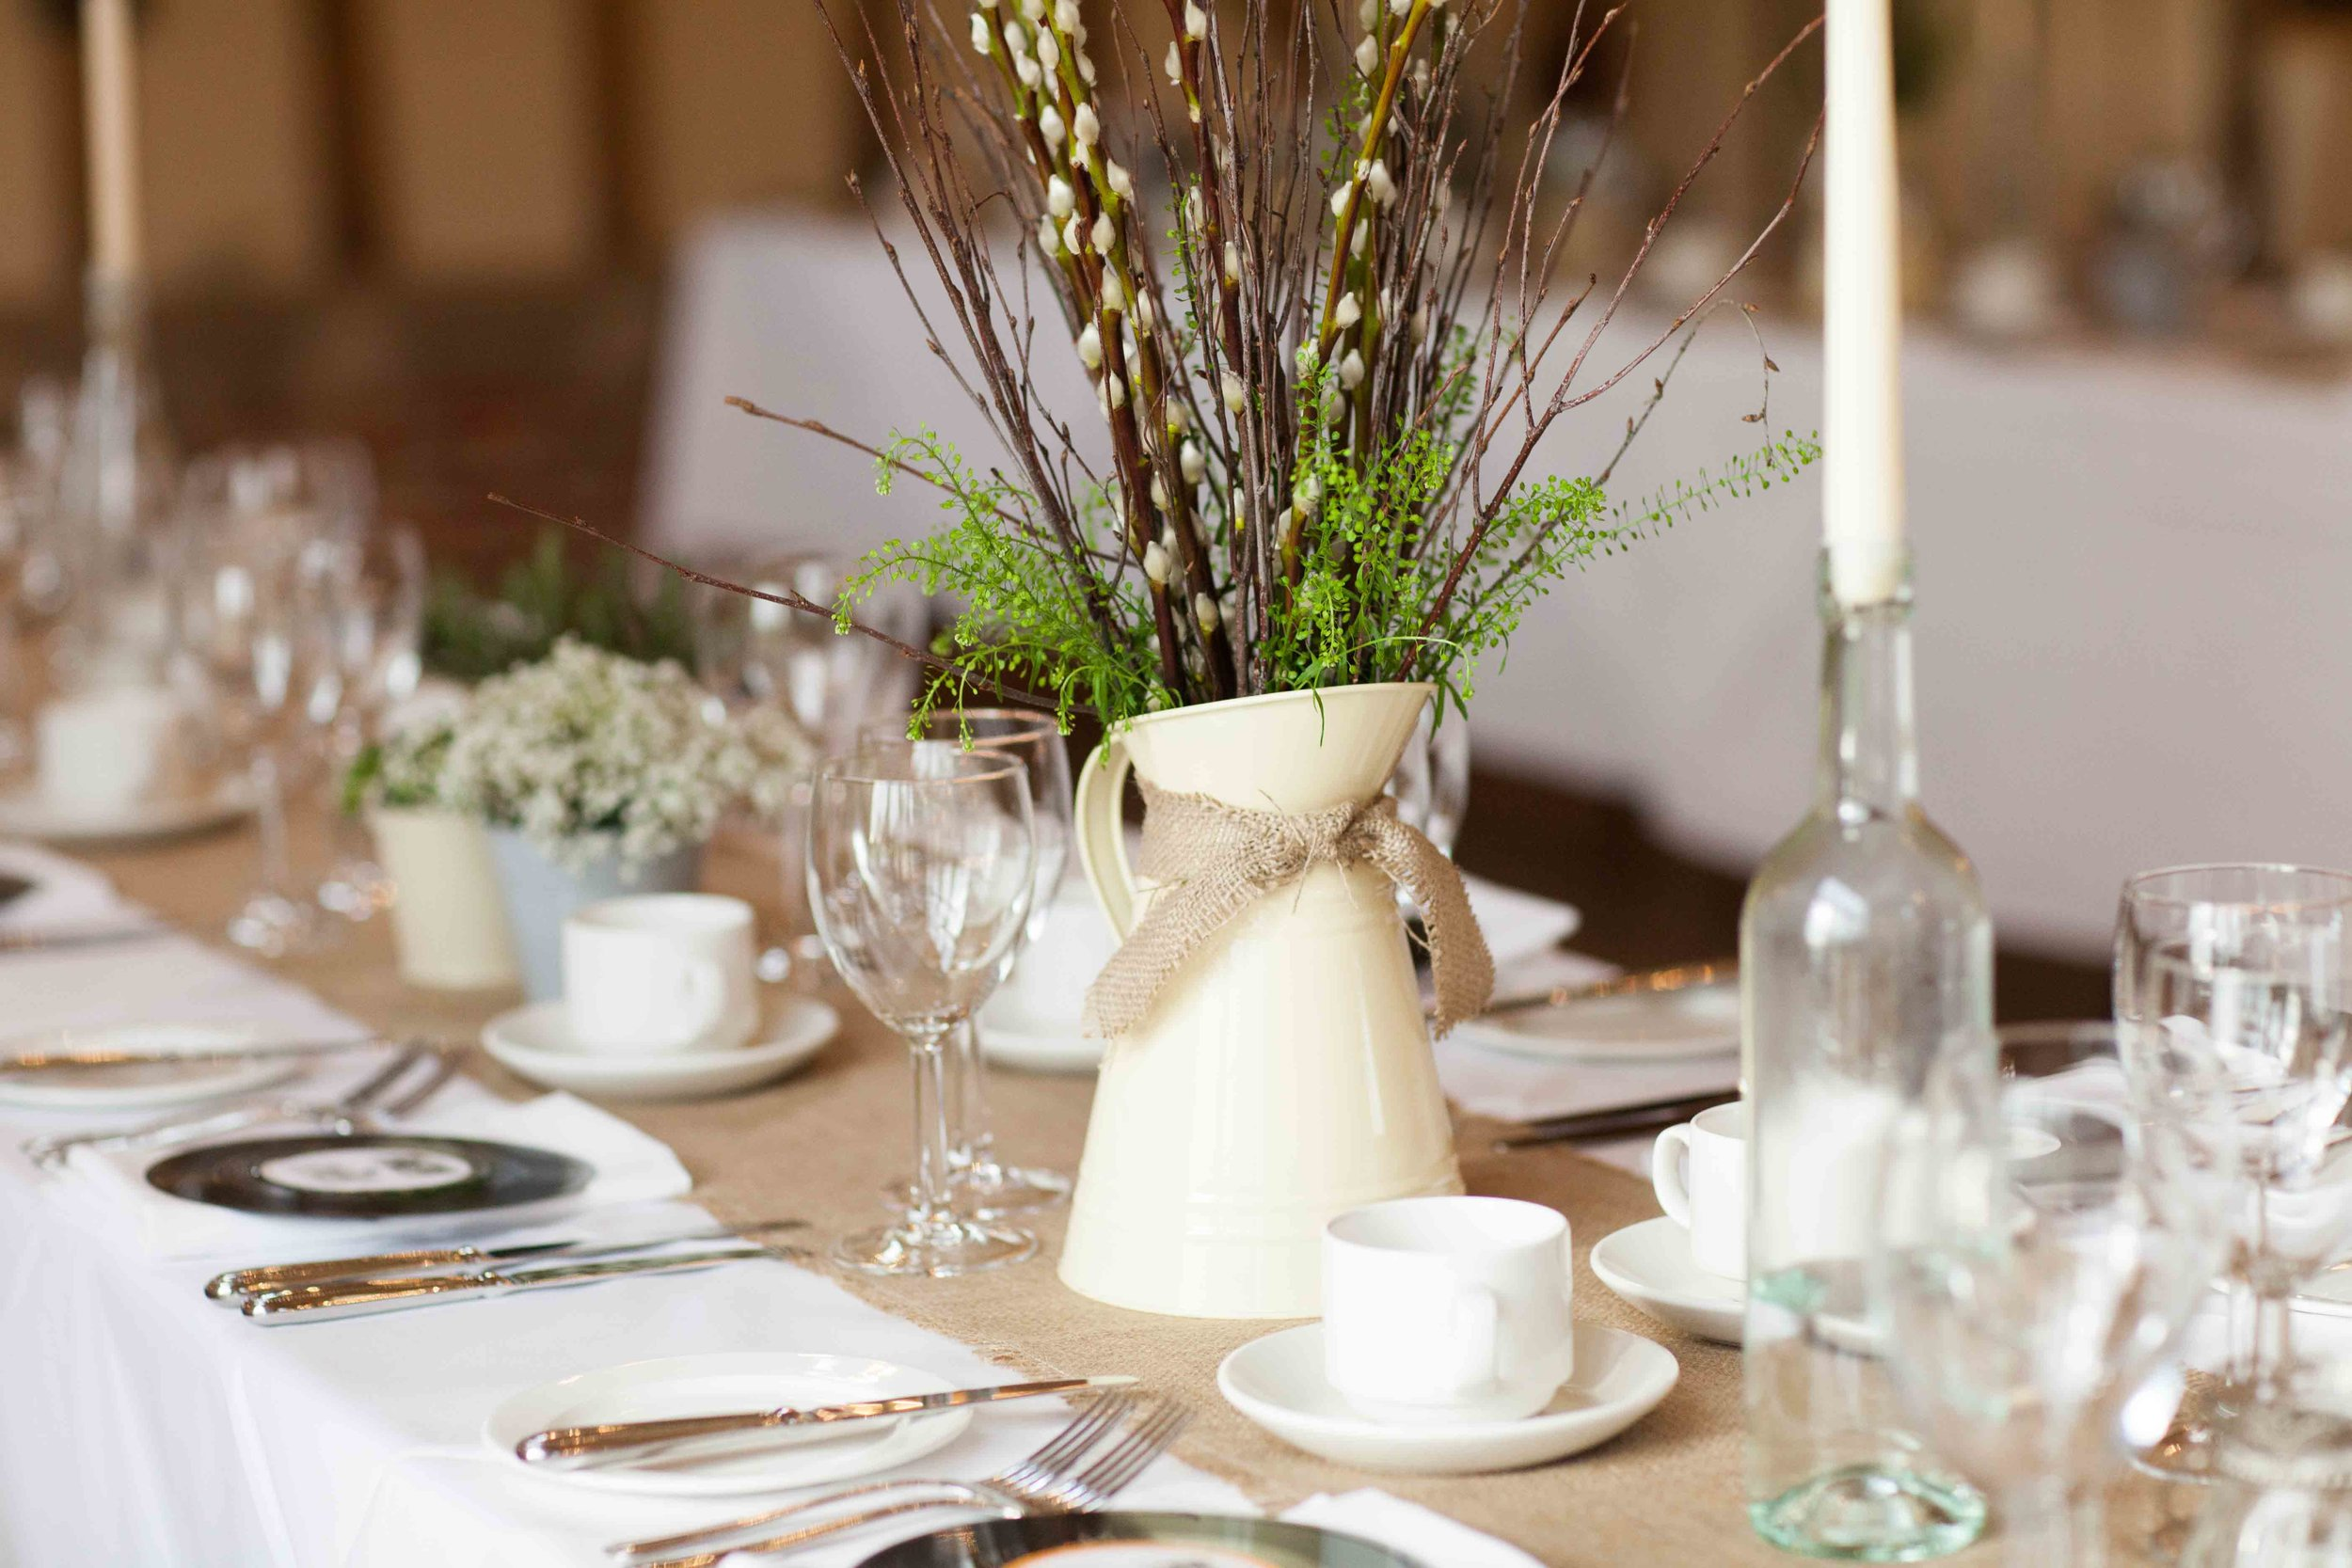 Christenings and Baby Naming Ceremonies - A charming setting for your special occasion